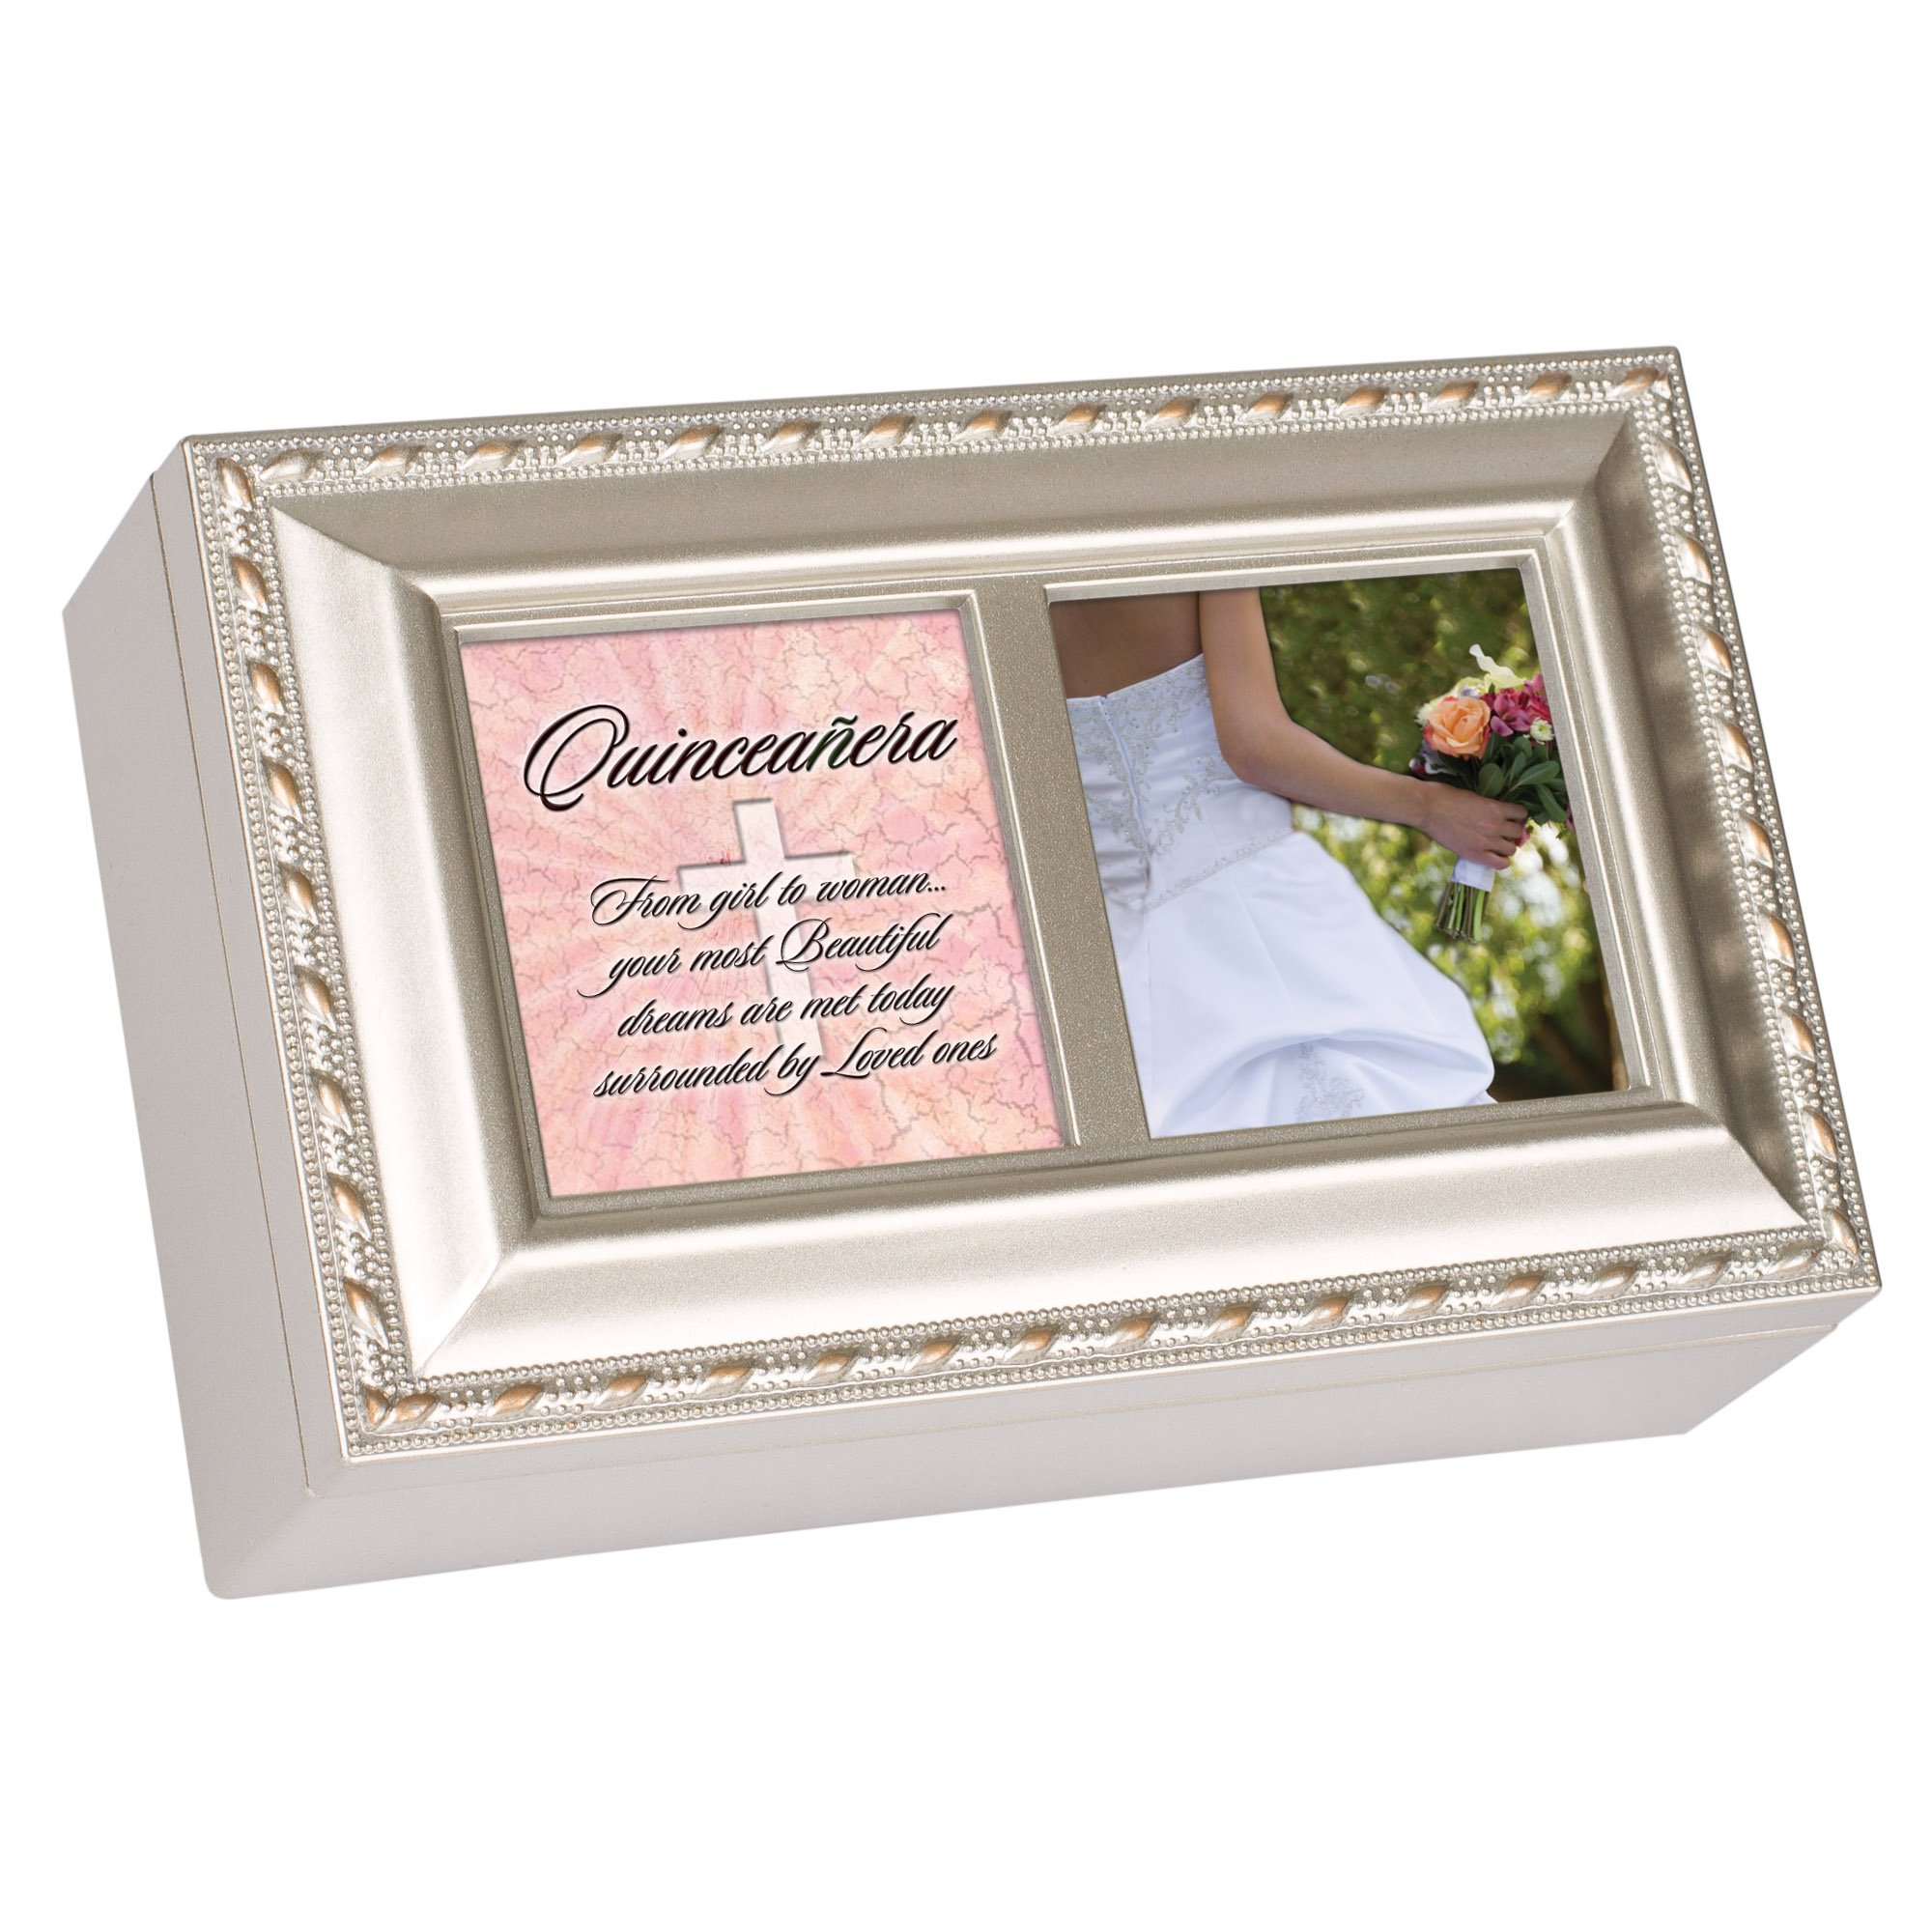 Cottage Garden Quinceanera Champagne Silver Petite Music Box Plays Light Up My Life